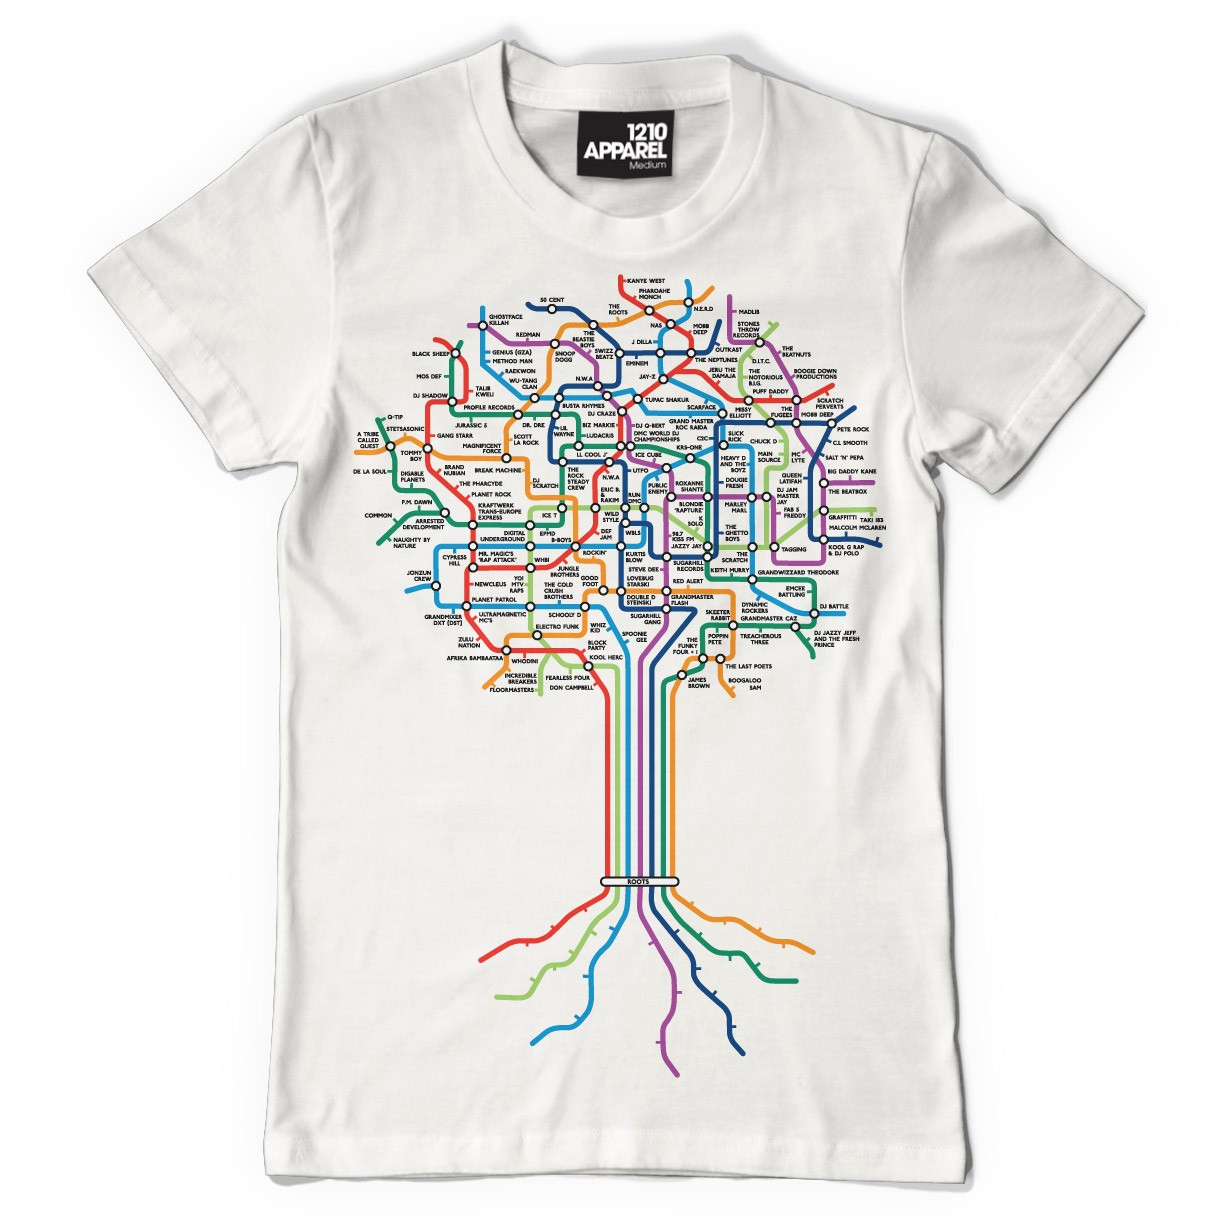 Technics Roots T-Shirts (White)